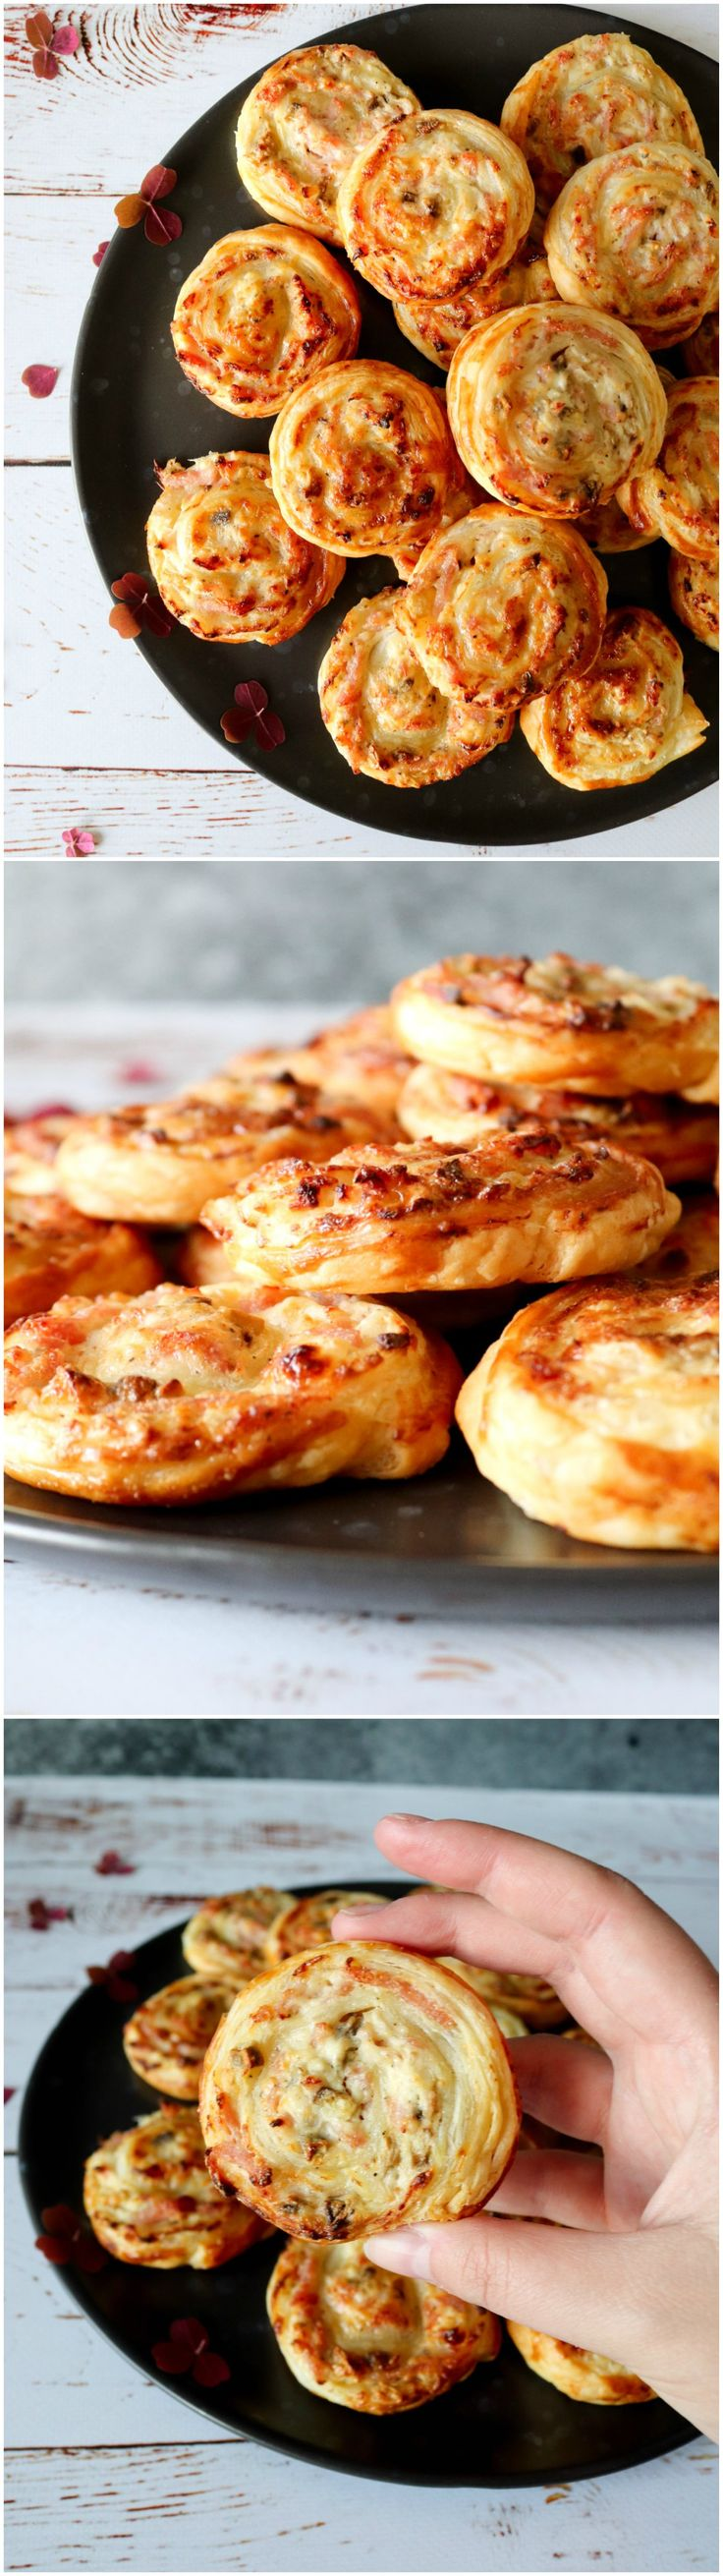 Puff Pastry Rolls With mushrooms, ham and cream cheese. A great snack for New years Eve.